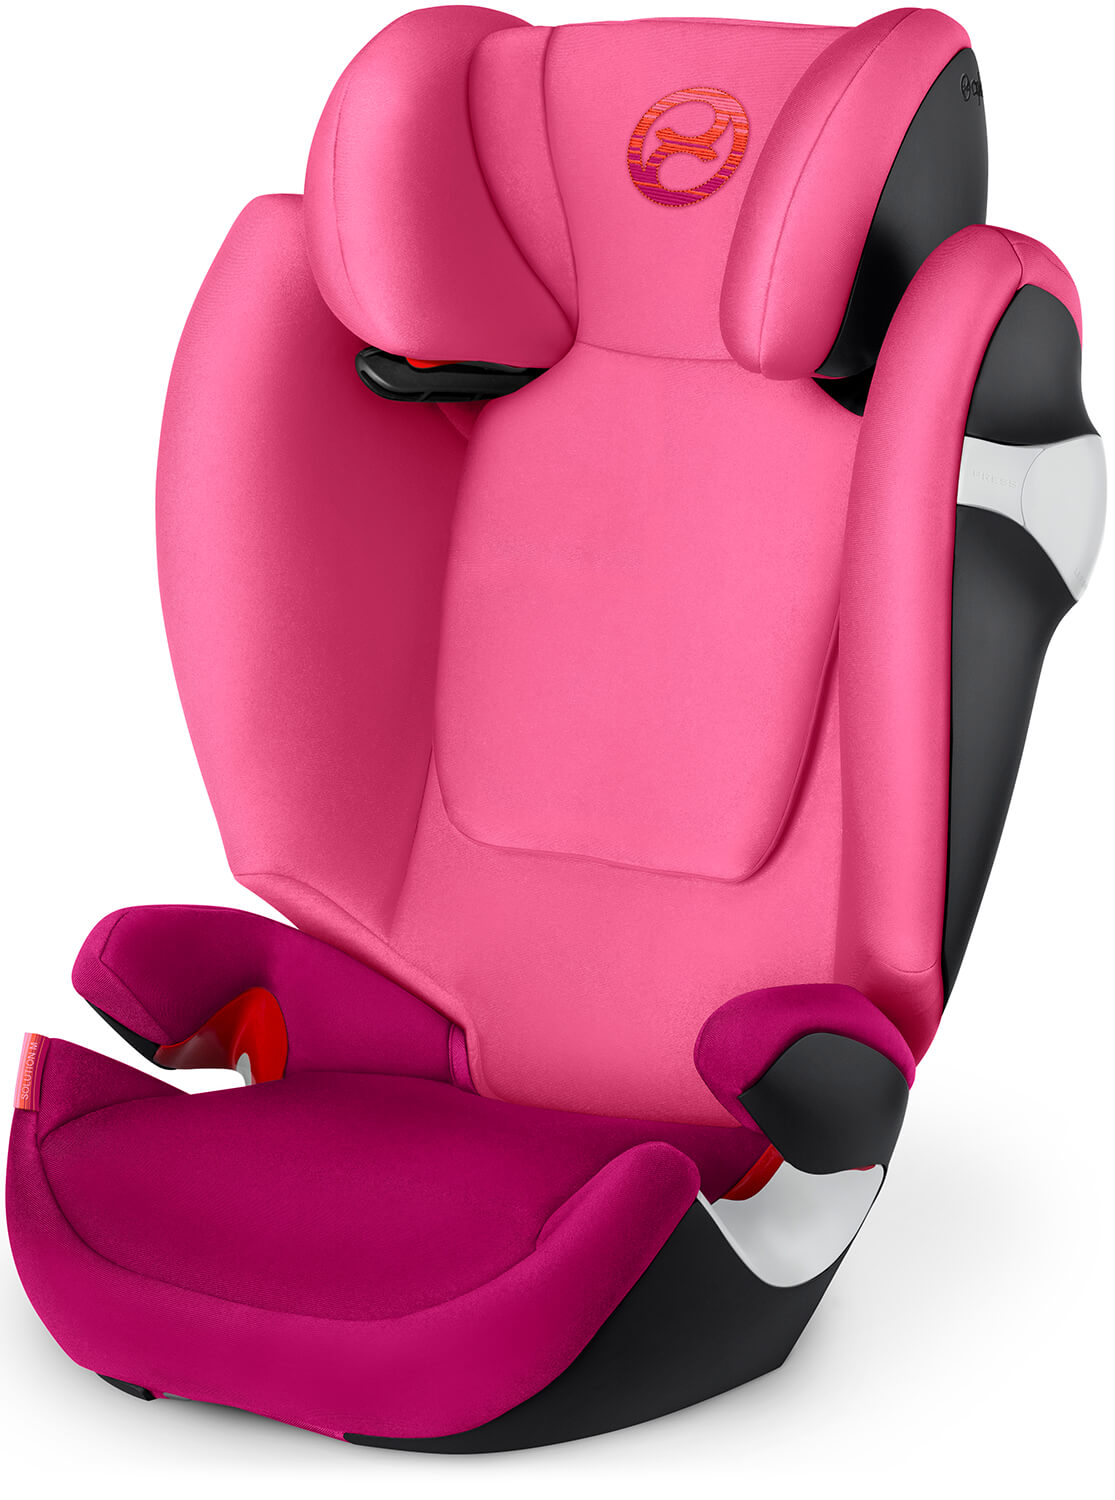 cybex solution m passion pink purple 2018 child car seat. Black Bedroom Furniture Sets. Home Design Ideas